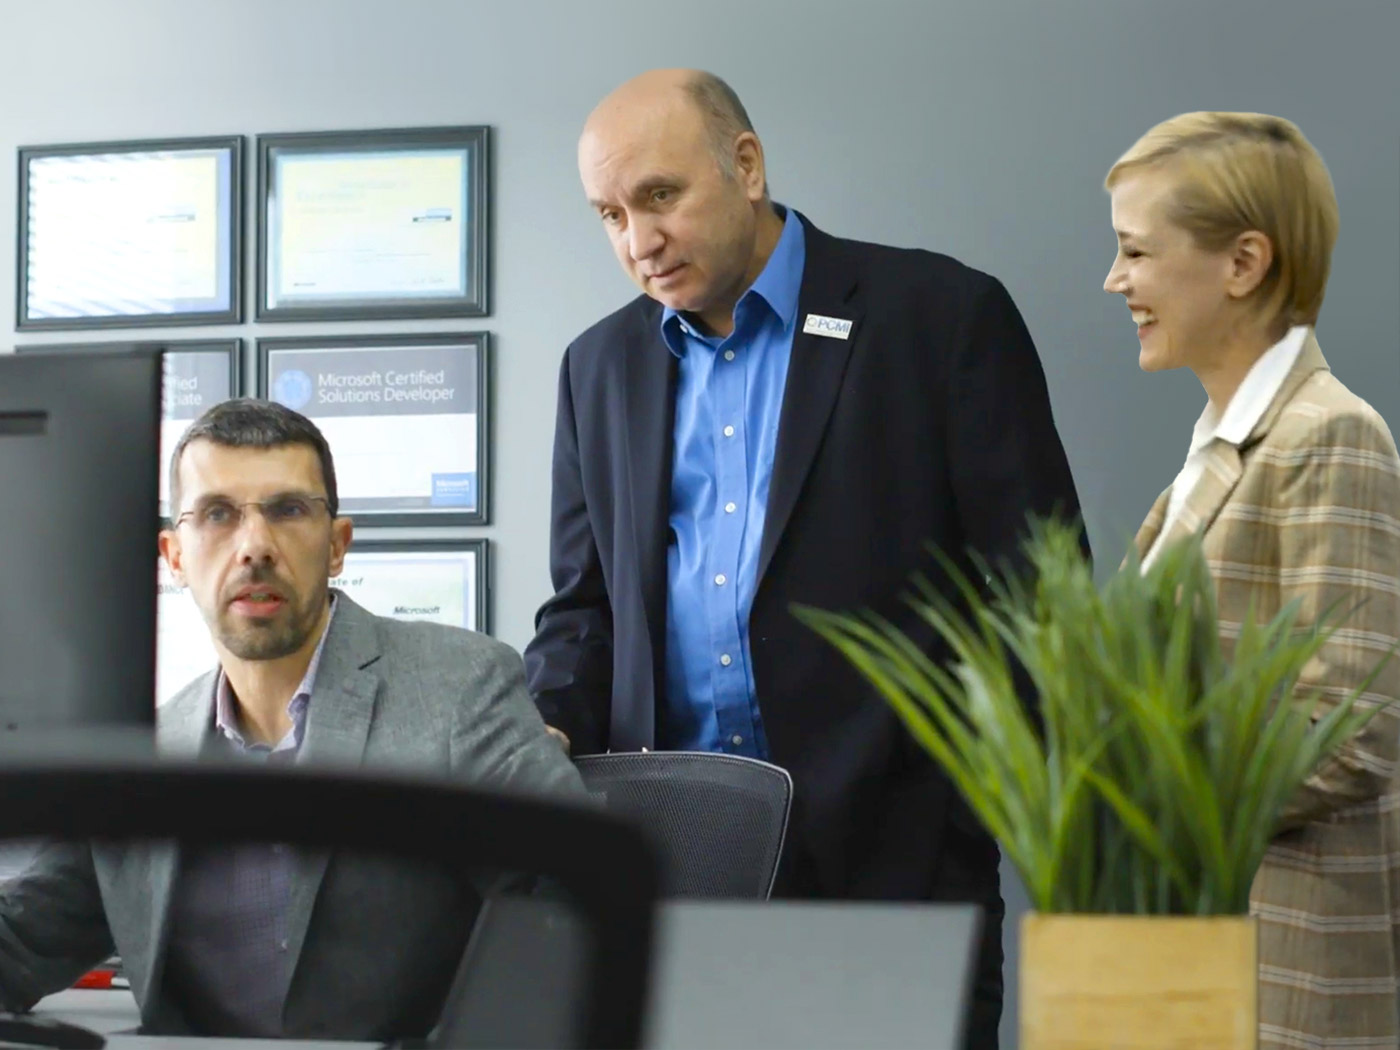 Leadership employees dicussing business around computer